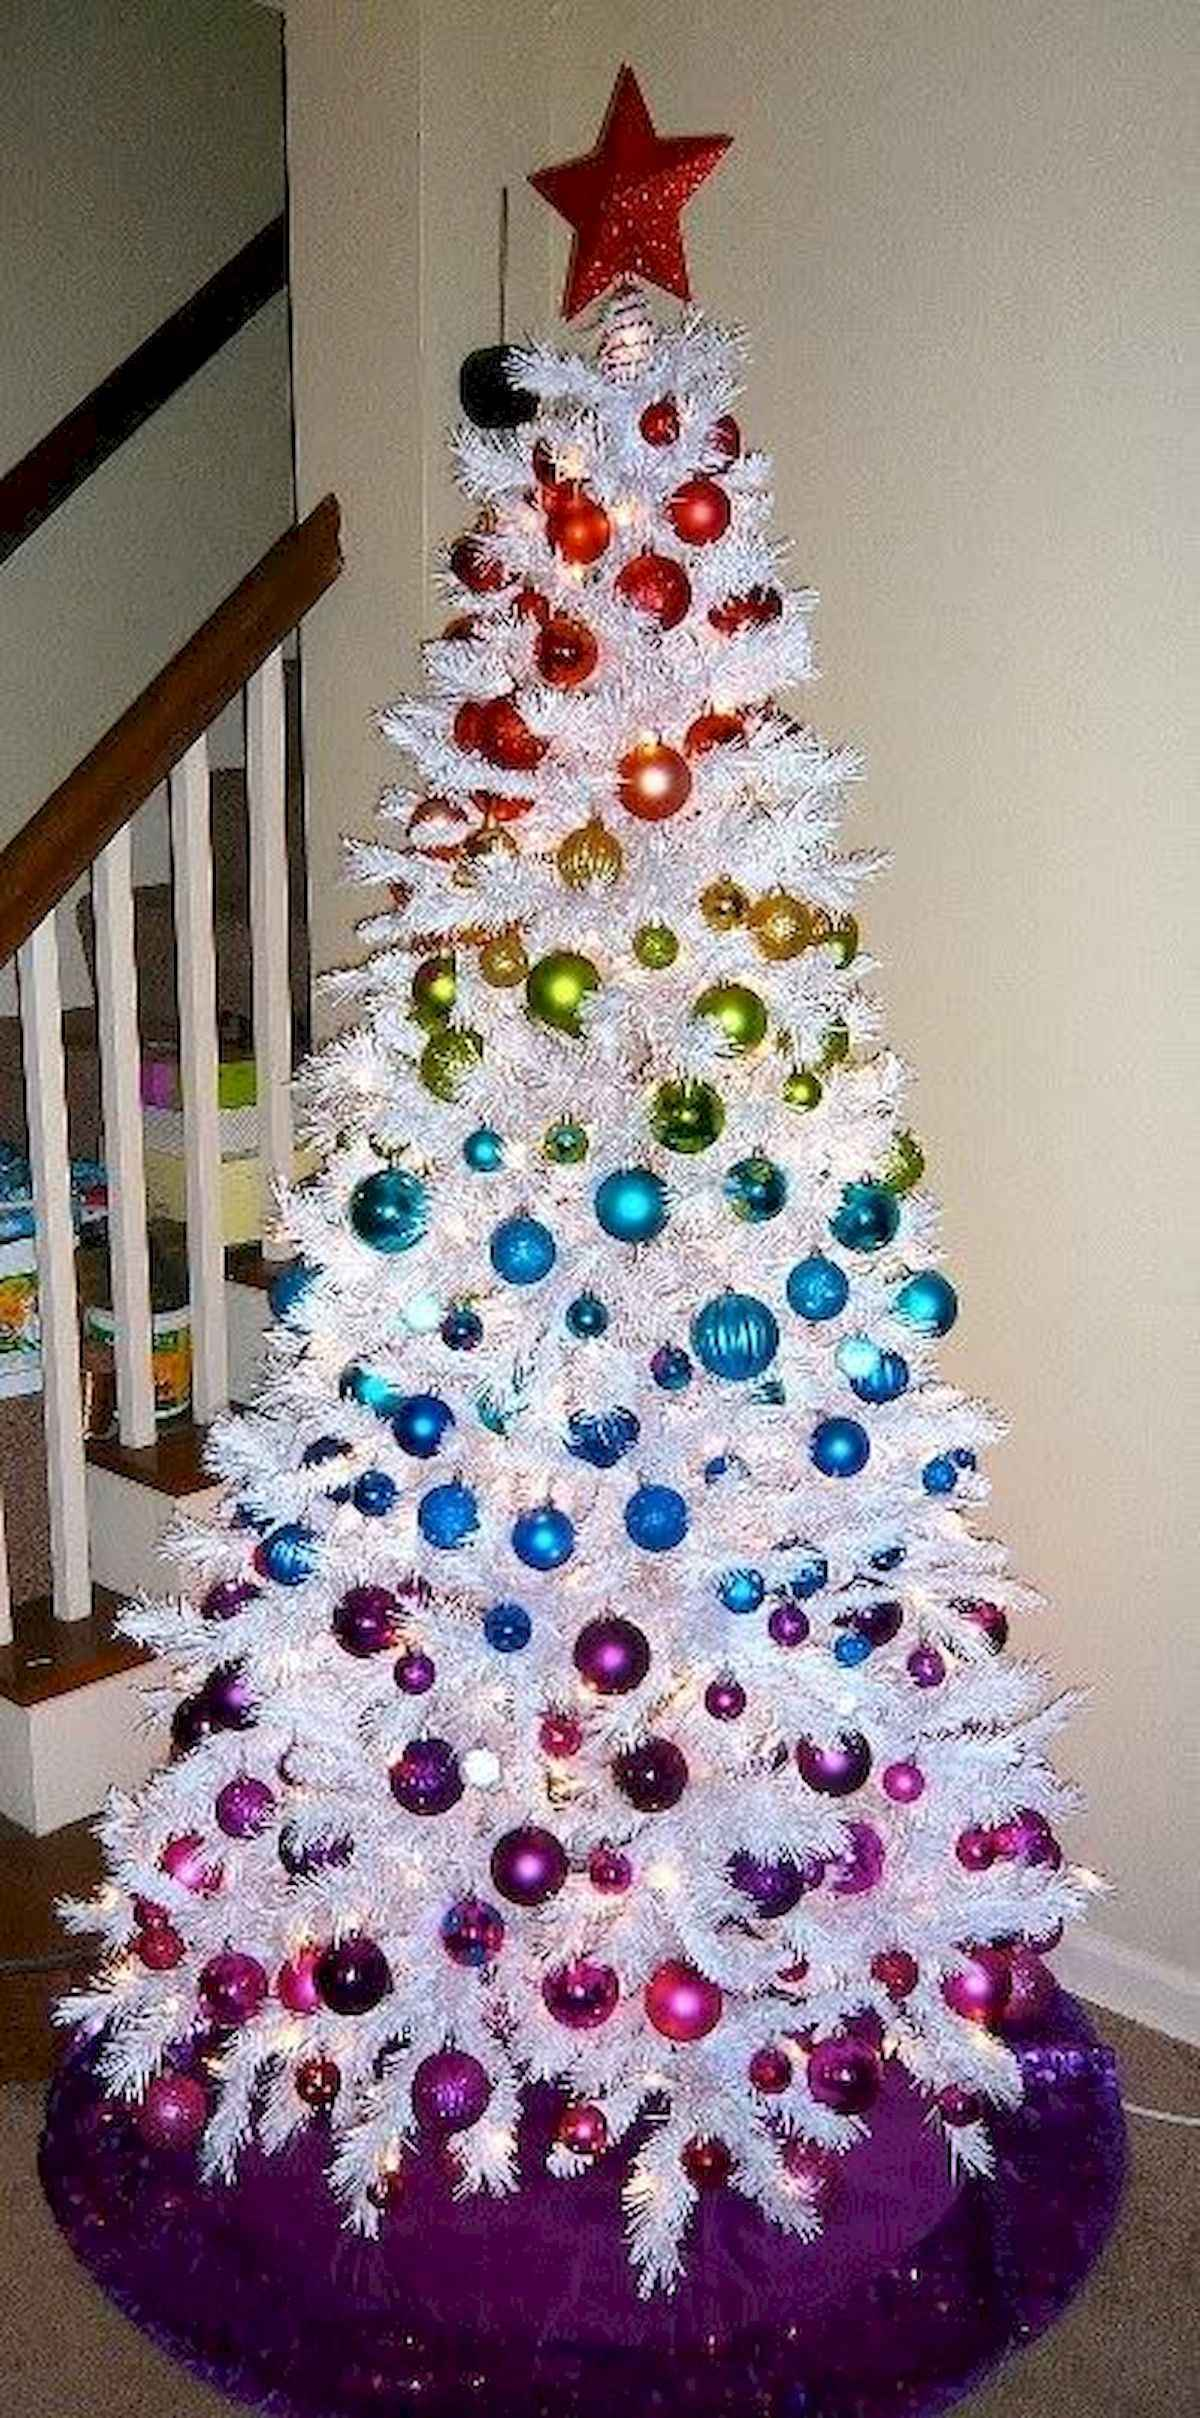 60 awesome christmas tree decorations ideas (44)